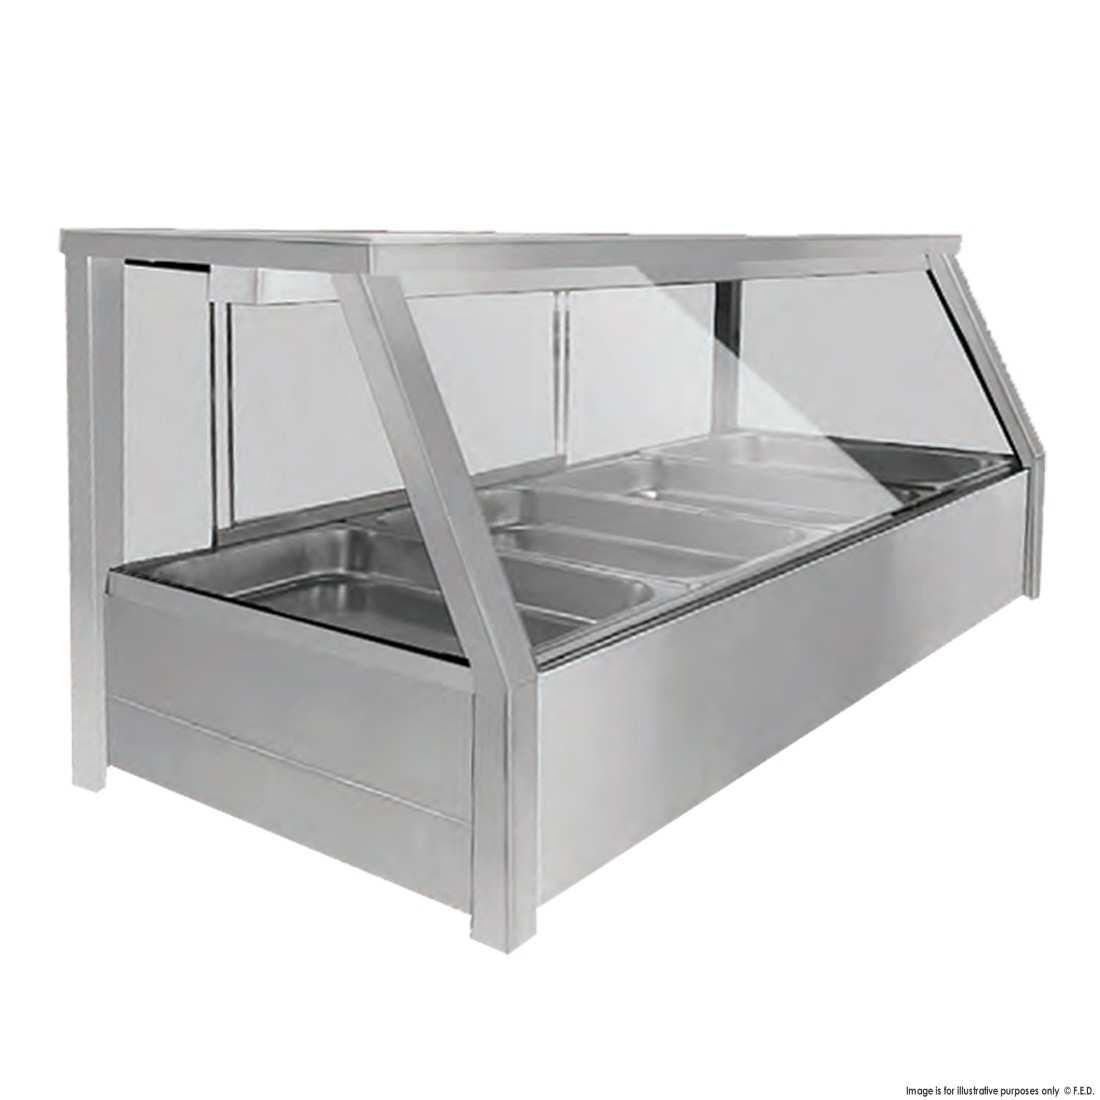 BM14TD Heated 8 × ½ Pan Bain Marie Angled Countertop Display